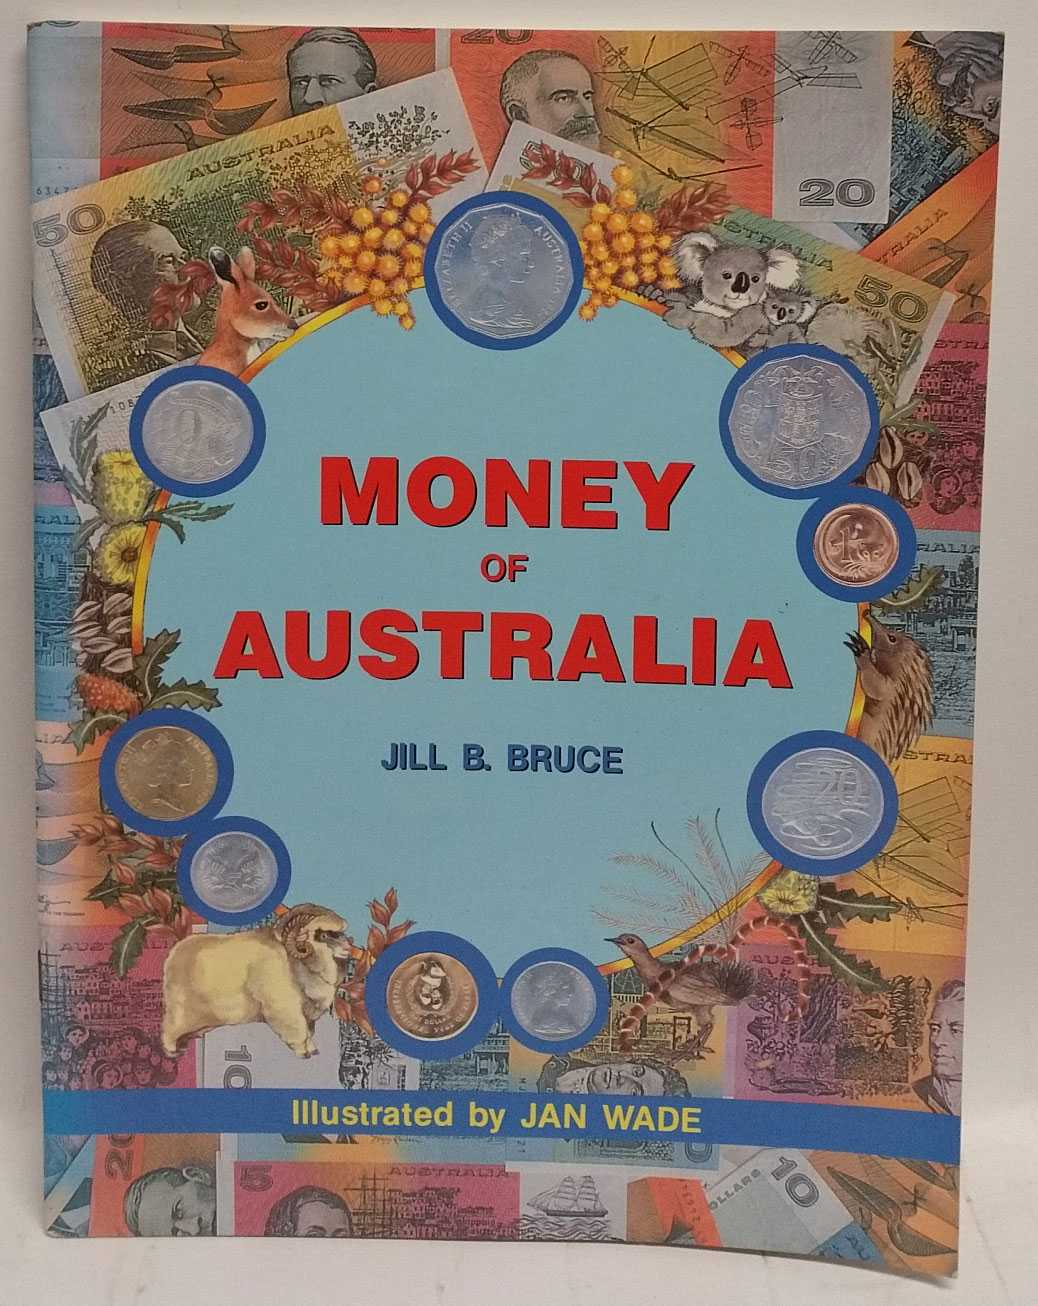 Money of Australia, Jill B. Bruce